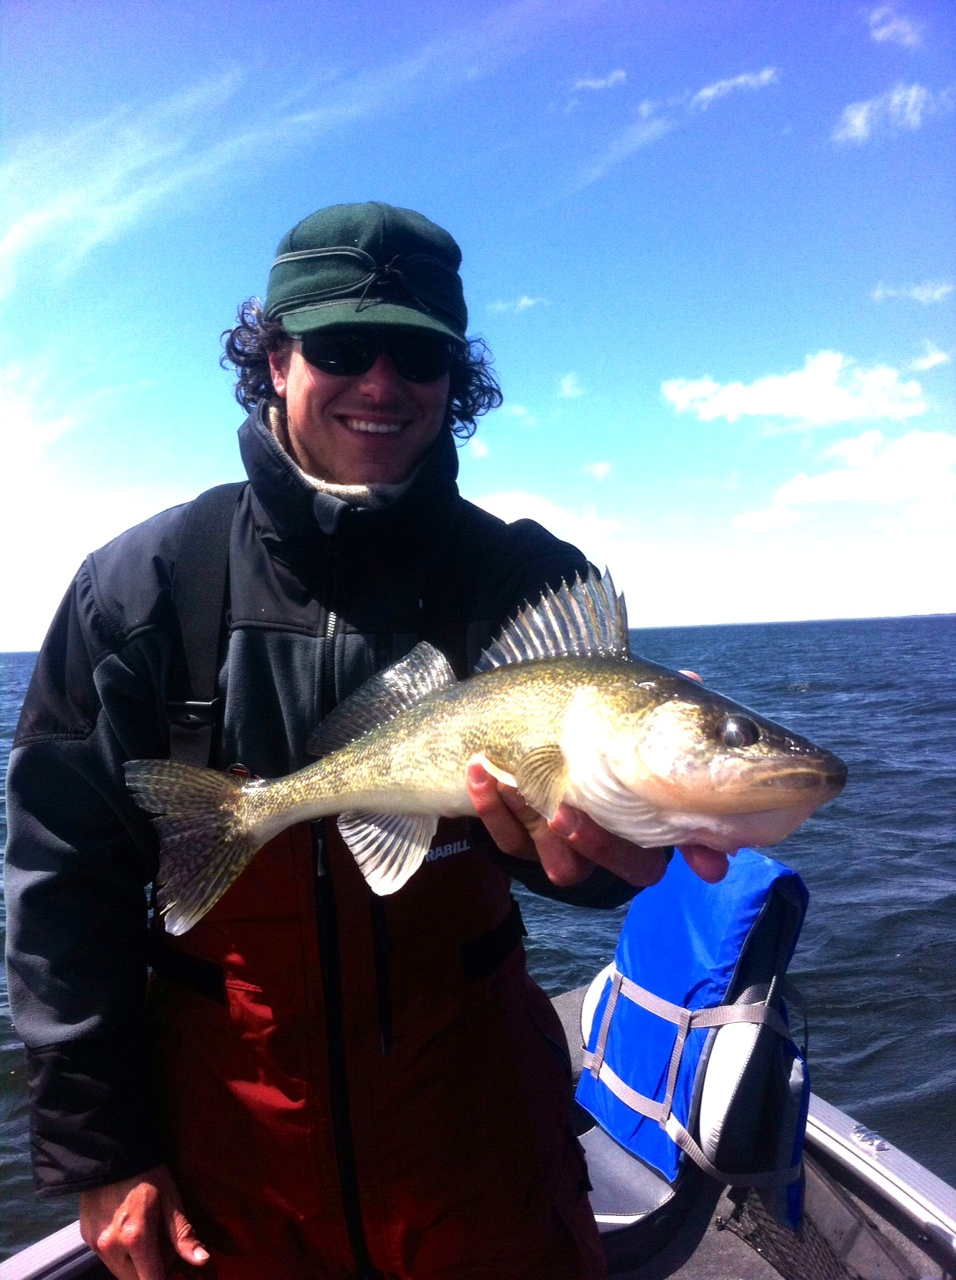 Dimich outdoors fishing report fish reports lake winnie region for Lake winnie fishing report